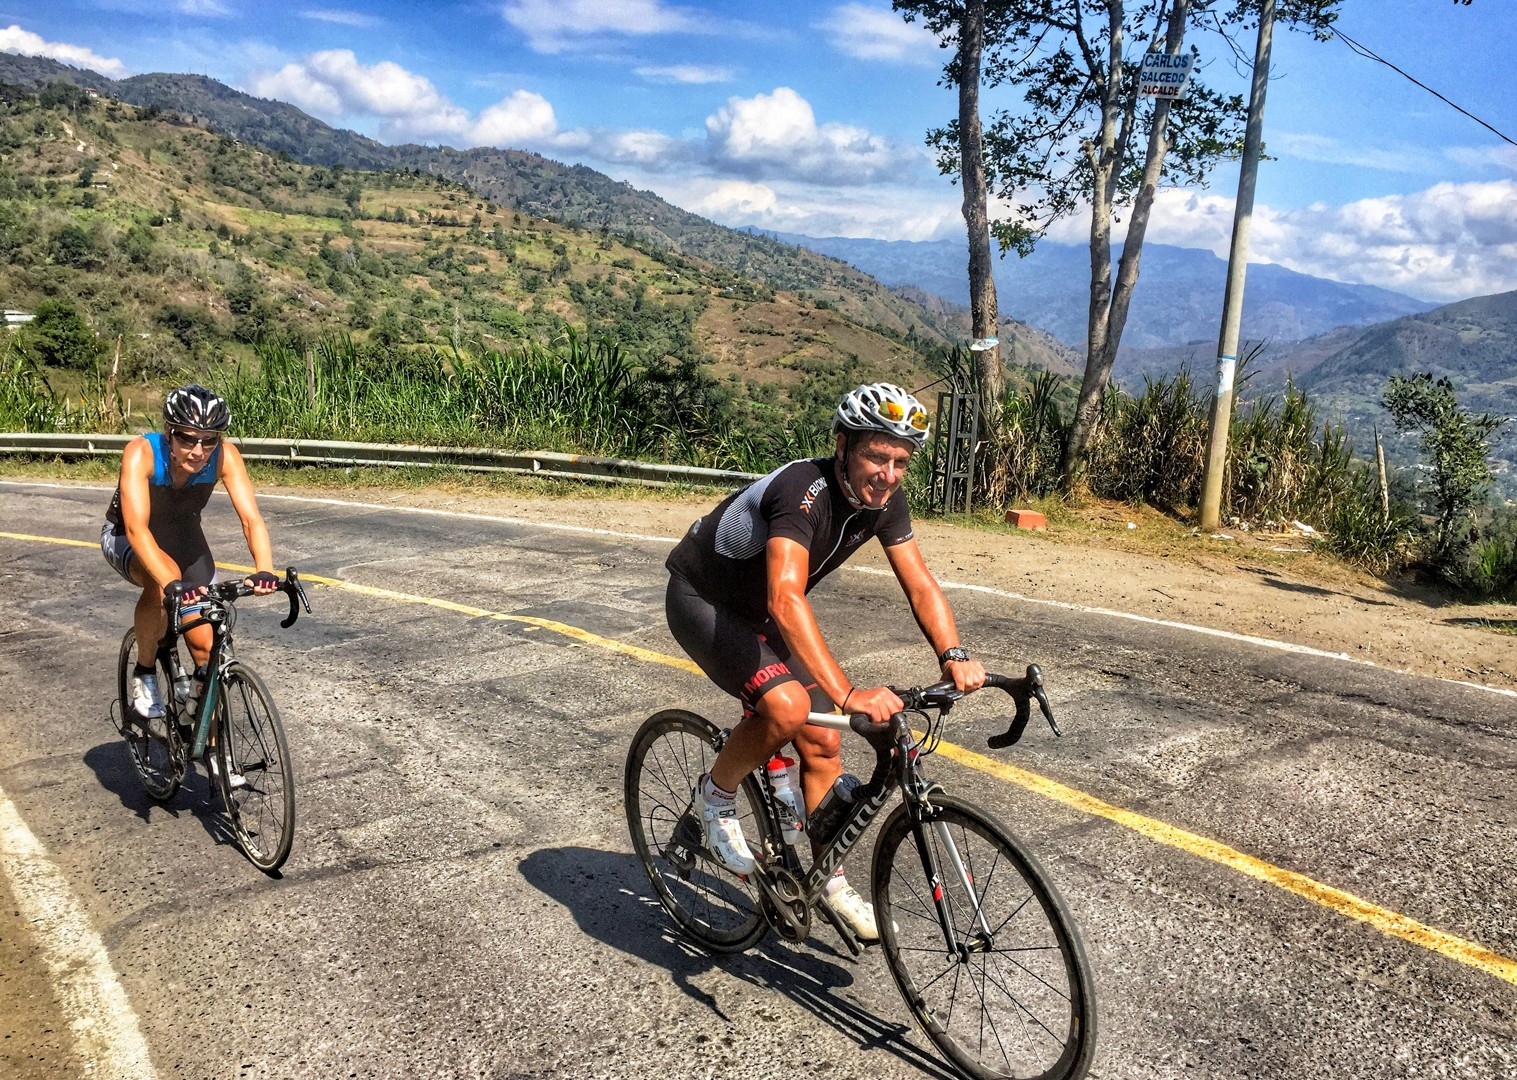 Andean-highlands-guided-road-cycling-holiday-emerald-mountains-colombia.JPG - Colombia - Emerald Mountains - Road Cycling